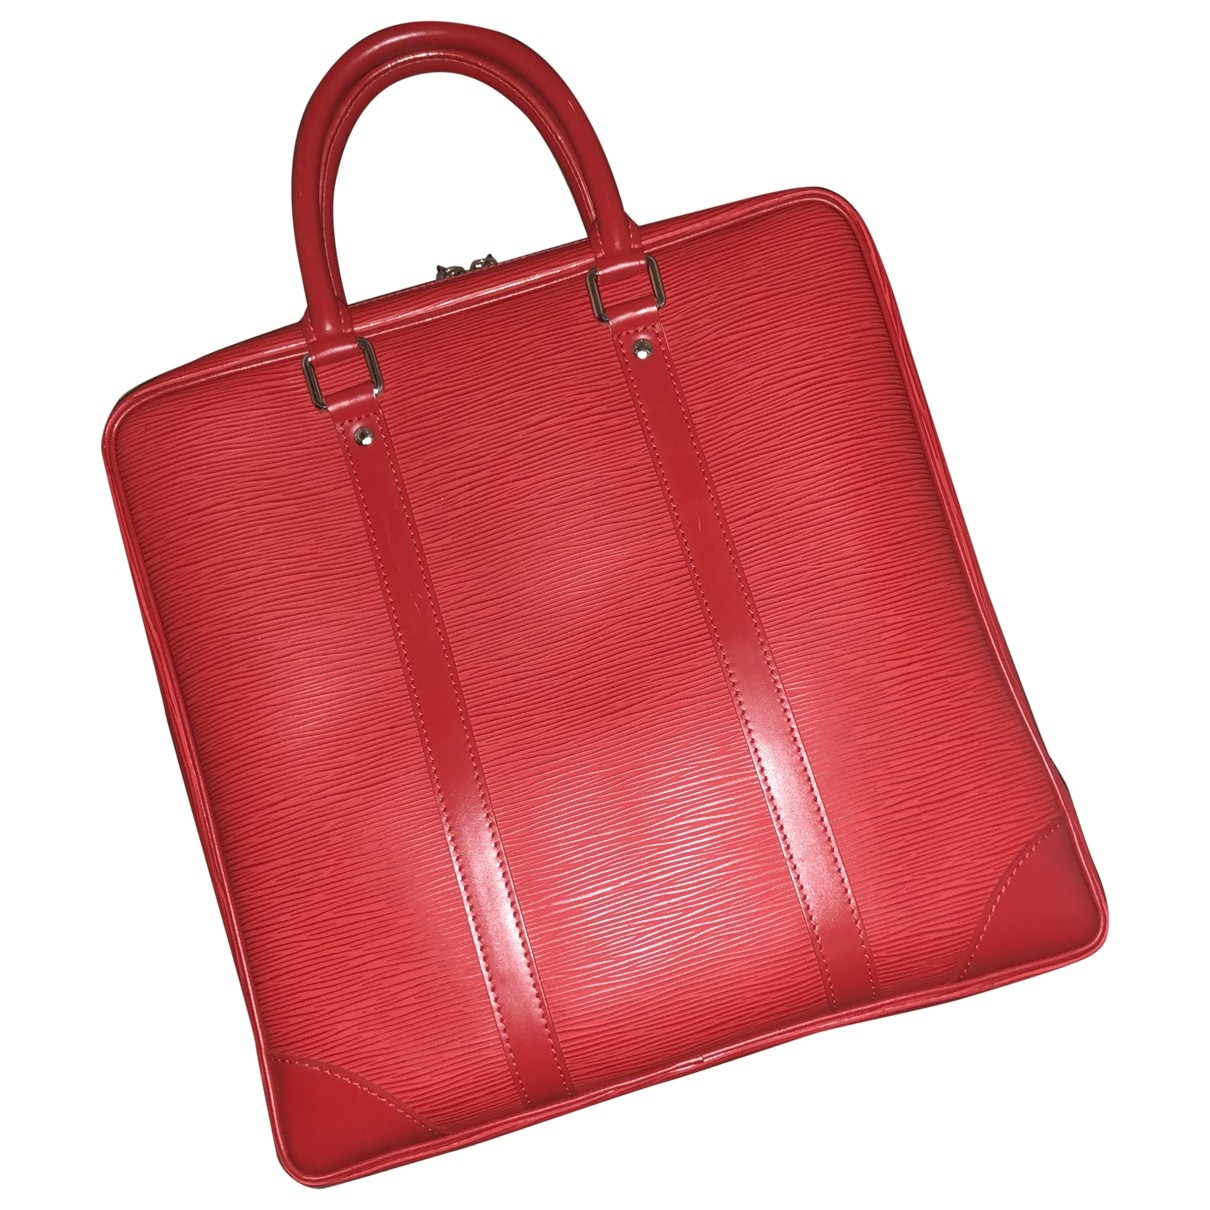 Louis Vuitton \N Red Leather bag for Men \N